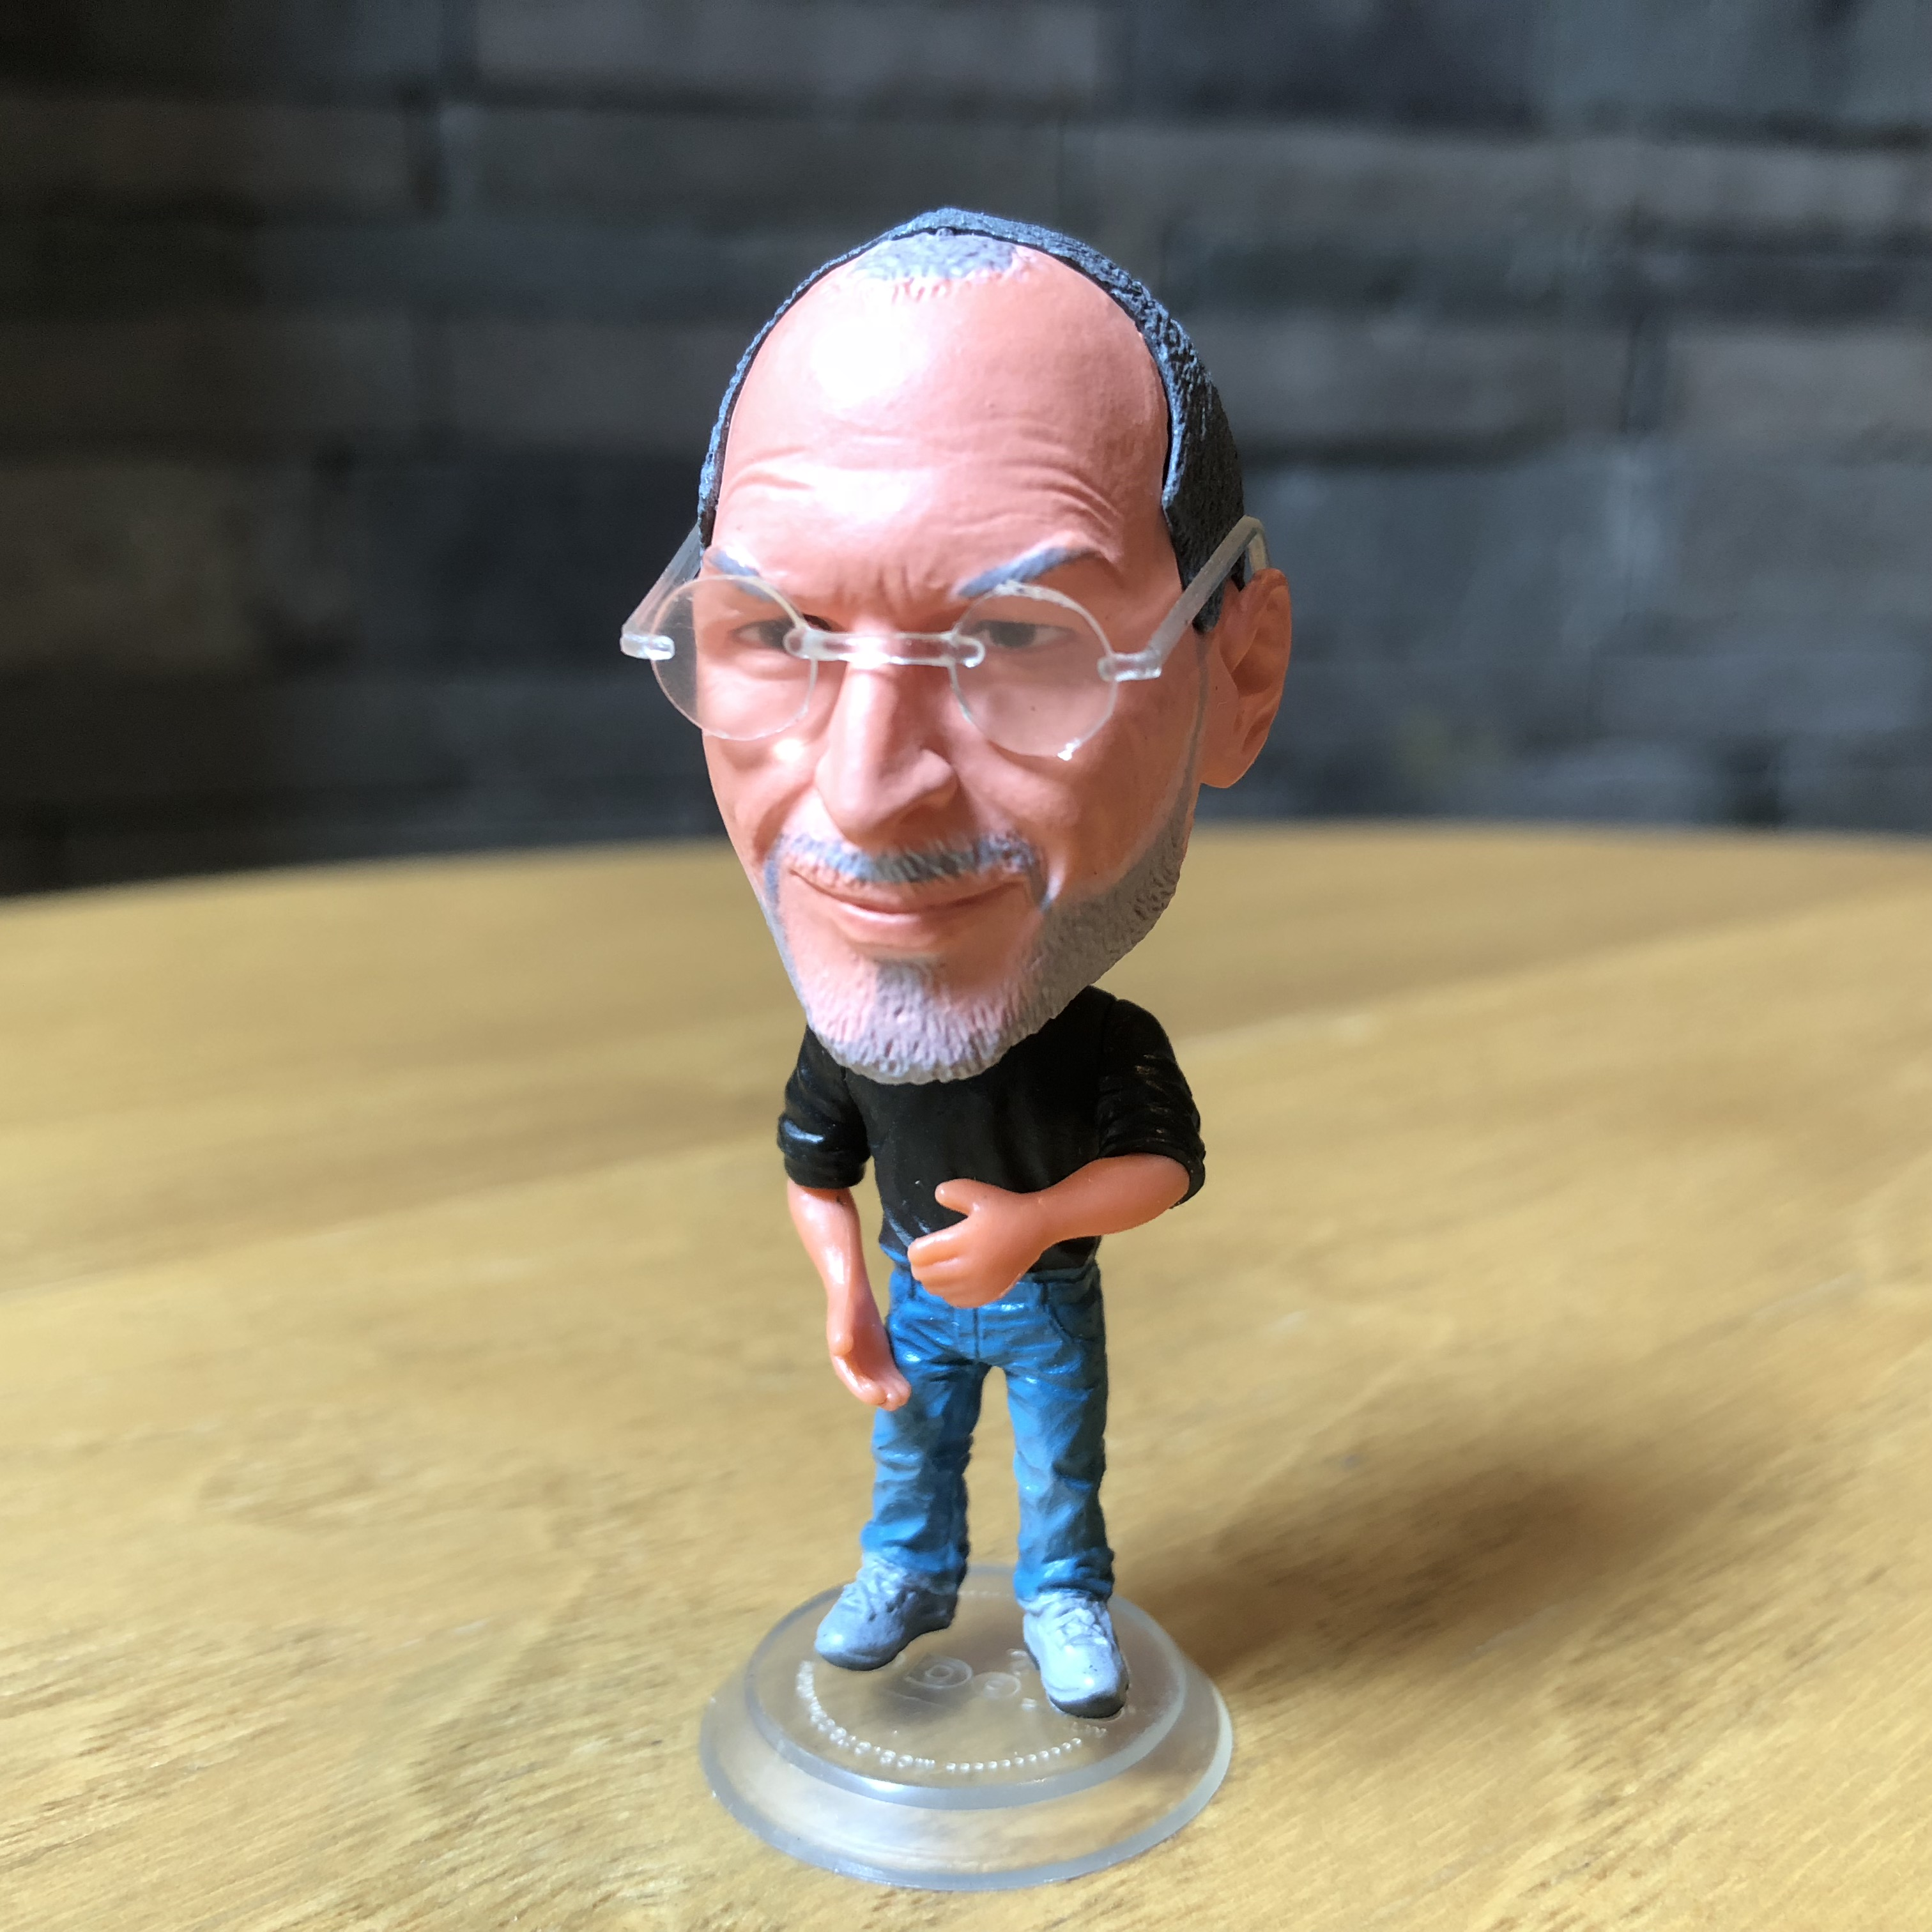 Technology Star Steve Classic Jobs Resin Doll Set Action Figure 6.5 Cm Mini Toy Collectible Gift